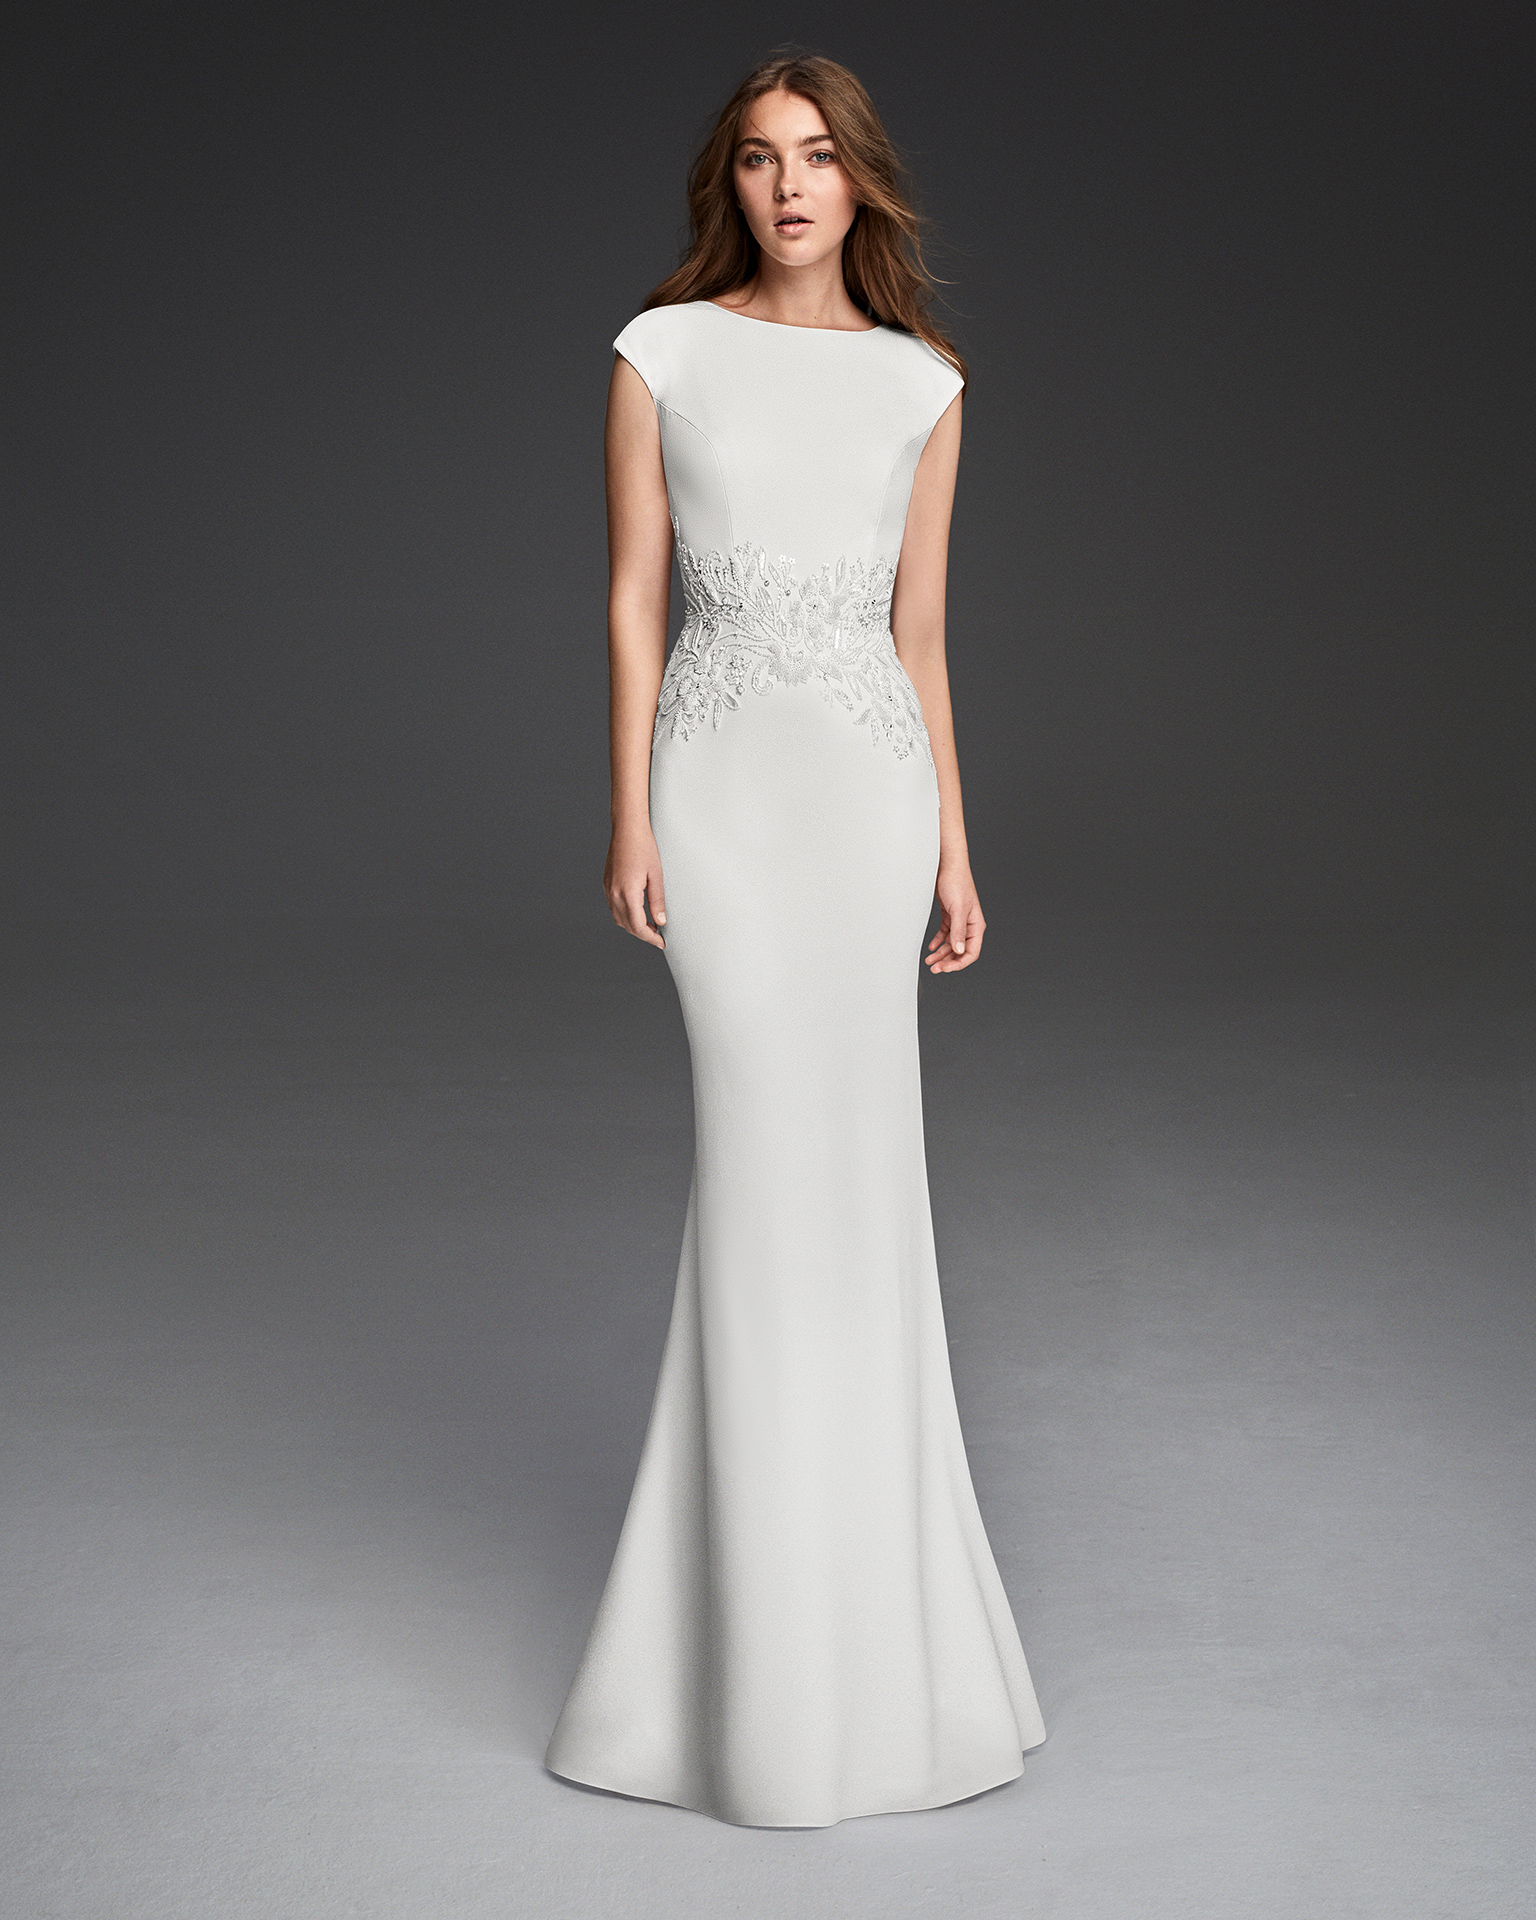 Crepe sheath wedding dress with short sleeves, low back and beadwork detail.